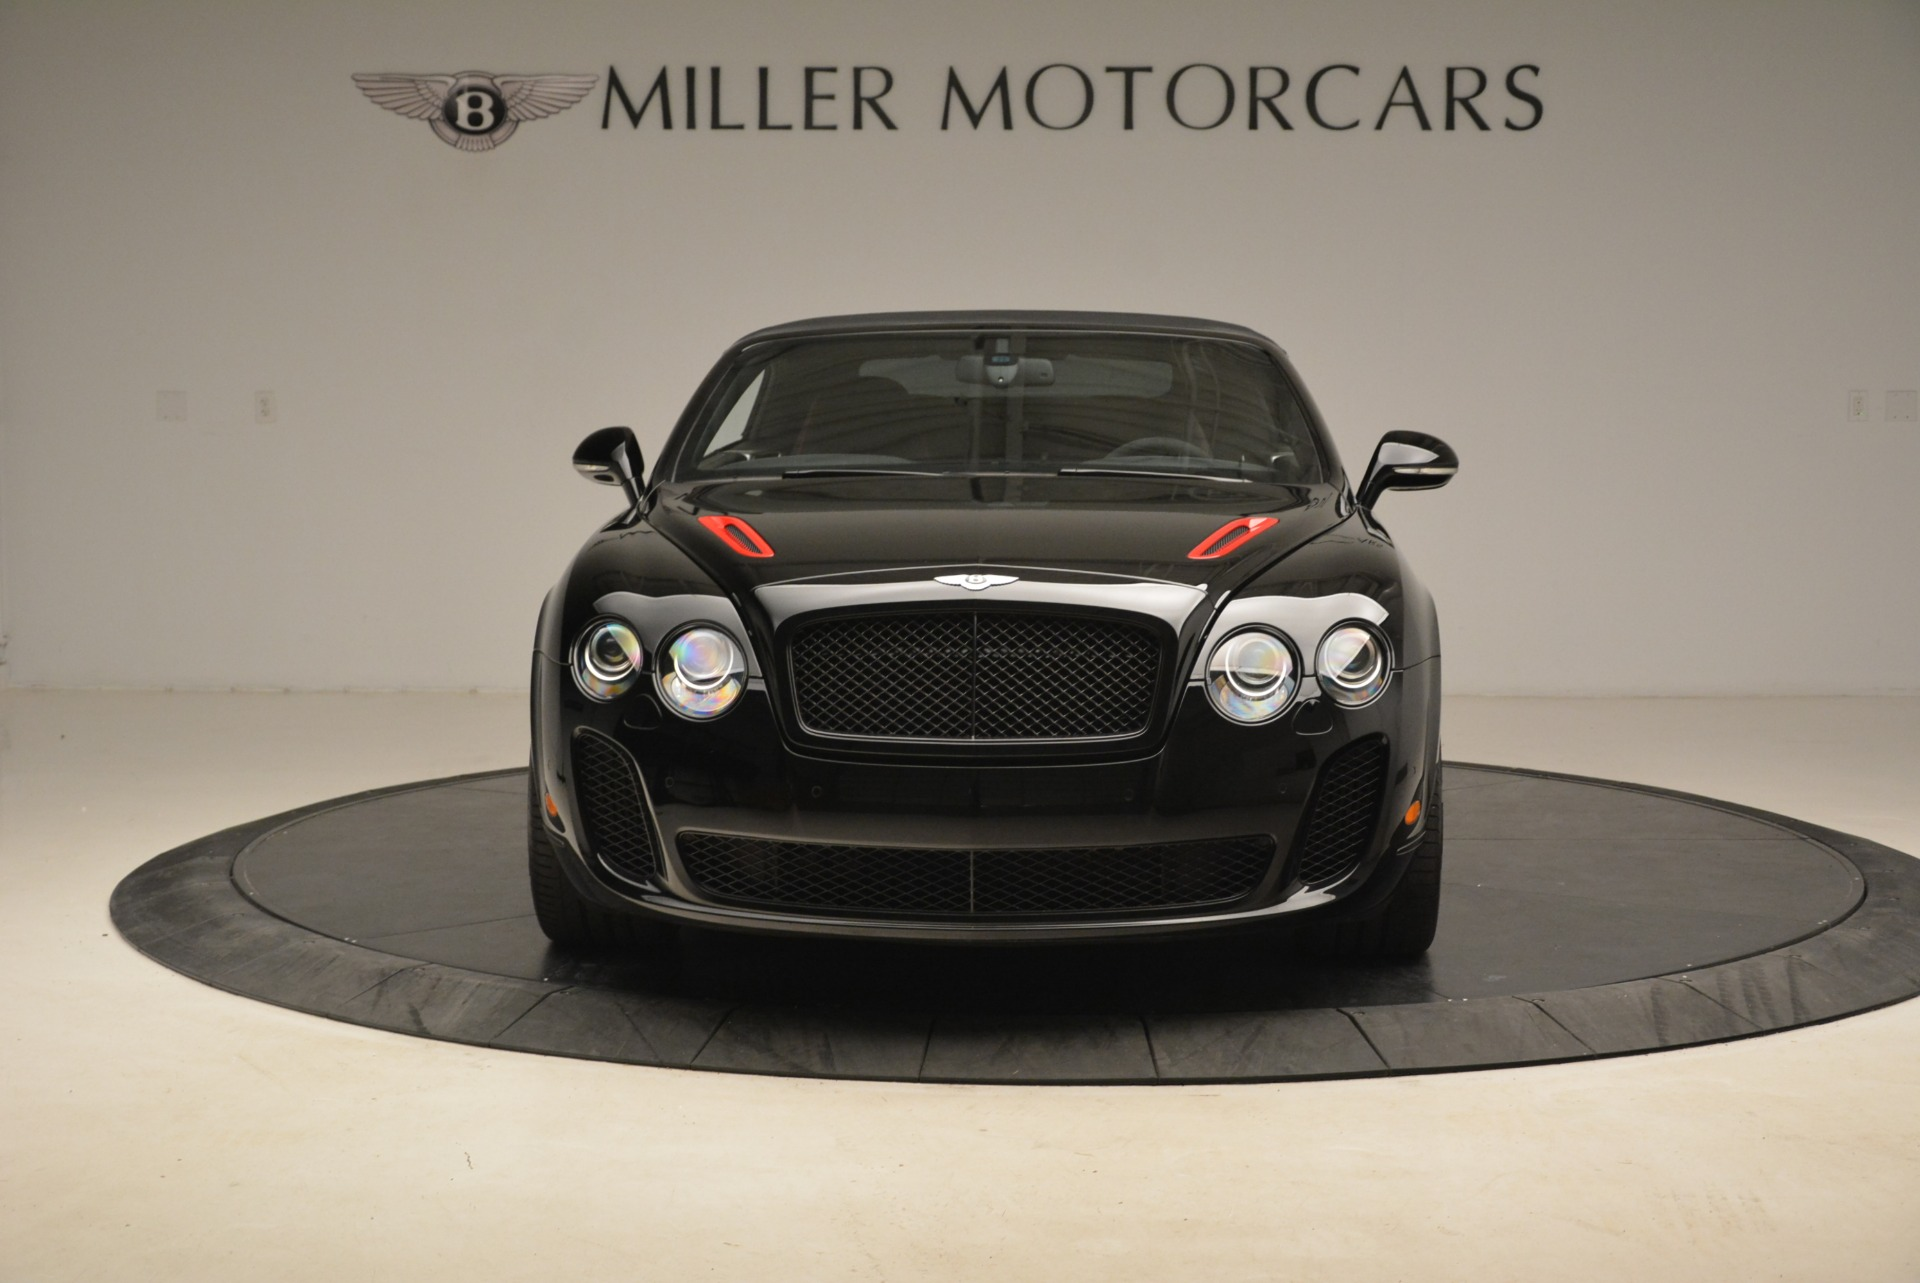 Used 2013 Bentley Continental GT Supersports Convertible ISR For Sale In Westport, CT 2151_p13